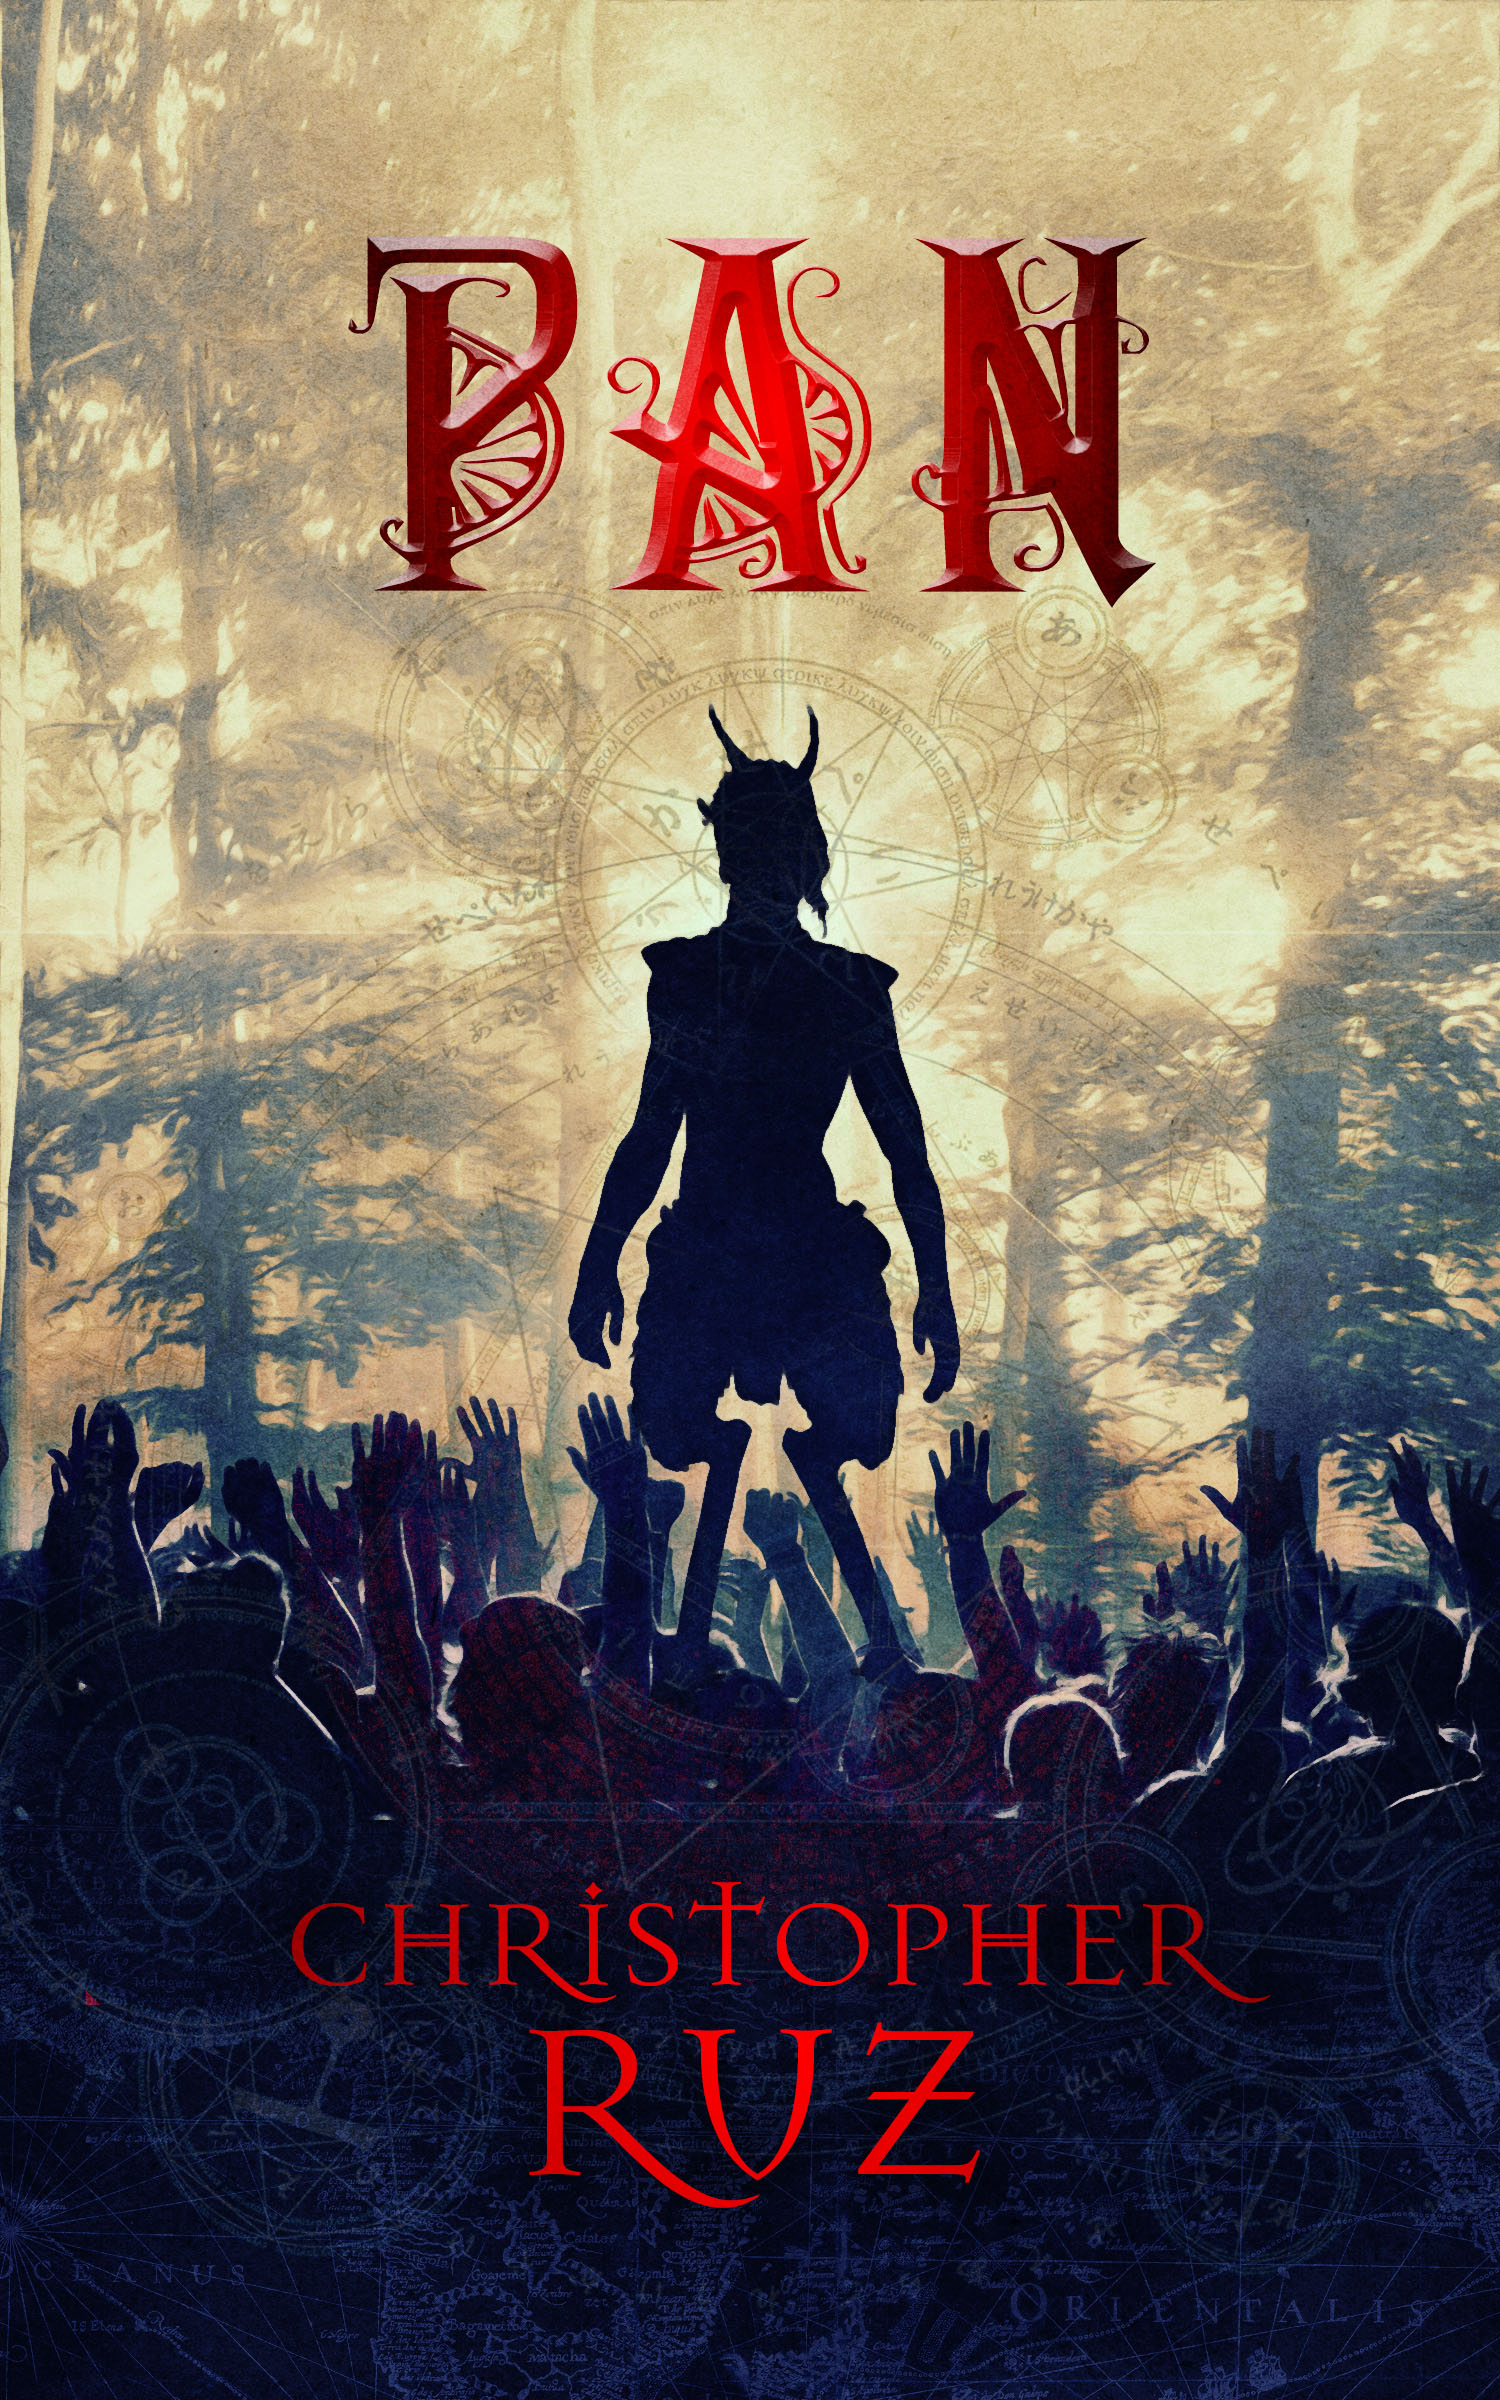 Cover art for Pan